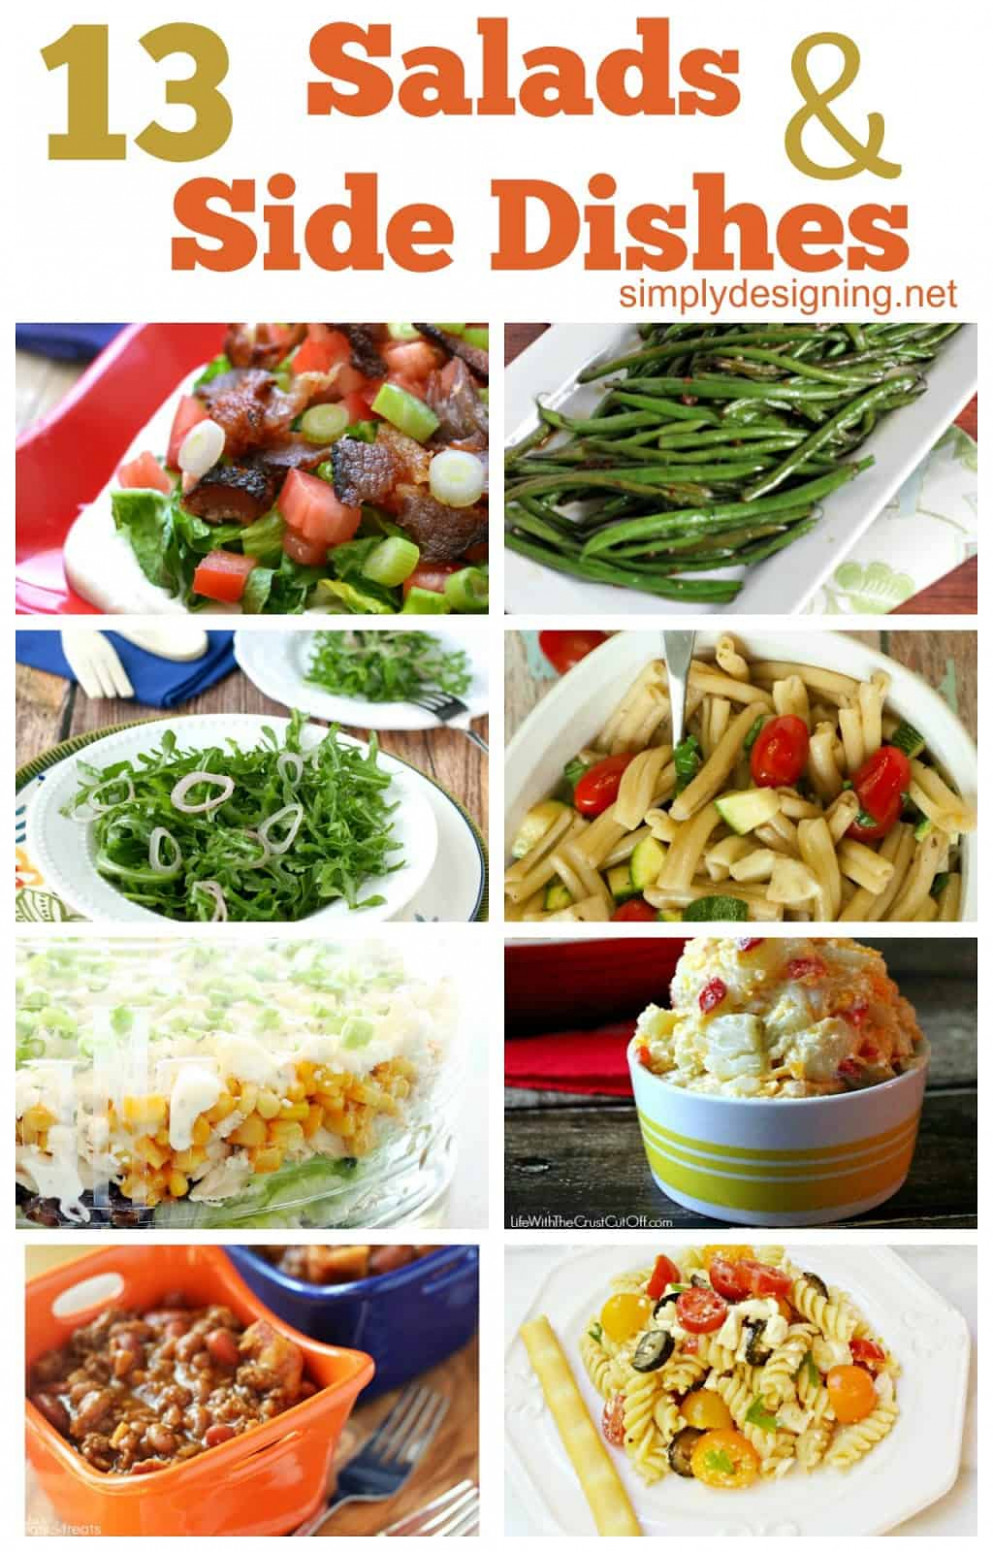 13 Salads & Side Dishes